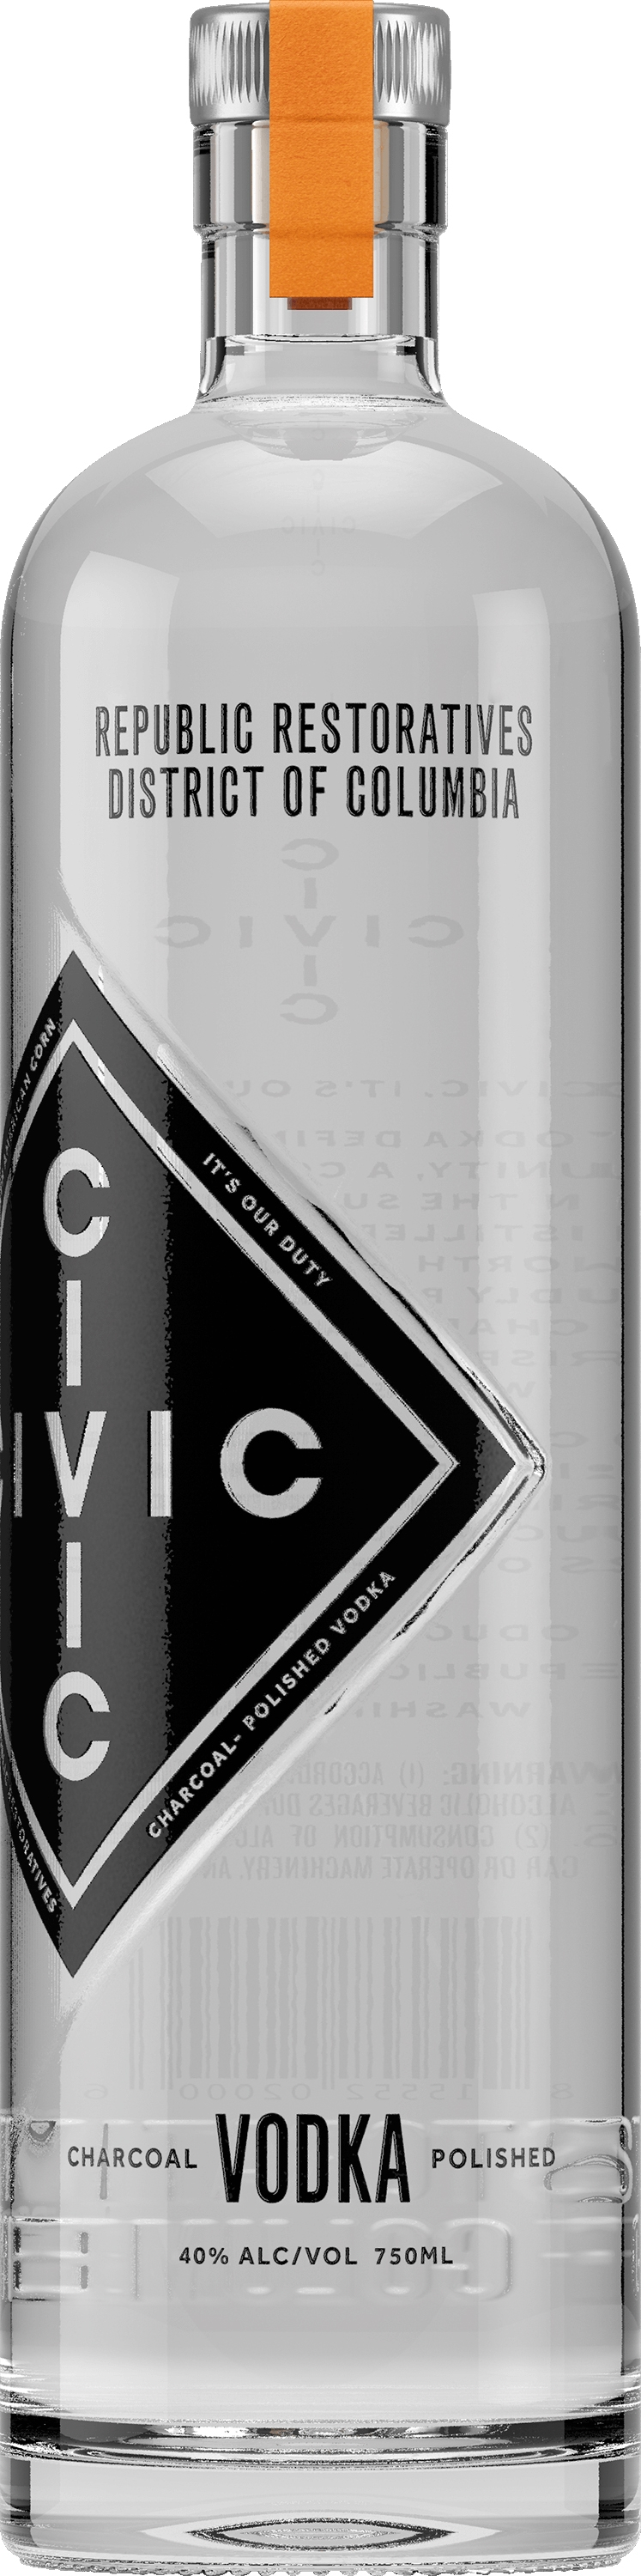 Republic Restoratives Civic Vodka ($ 27.99)